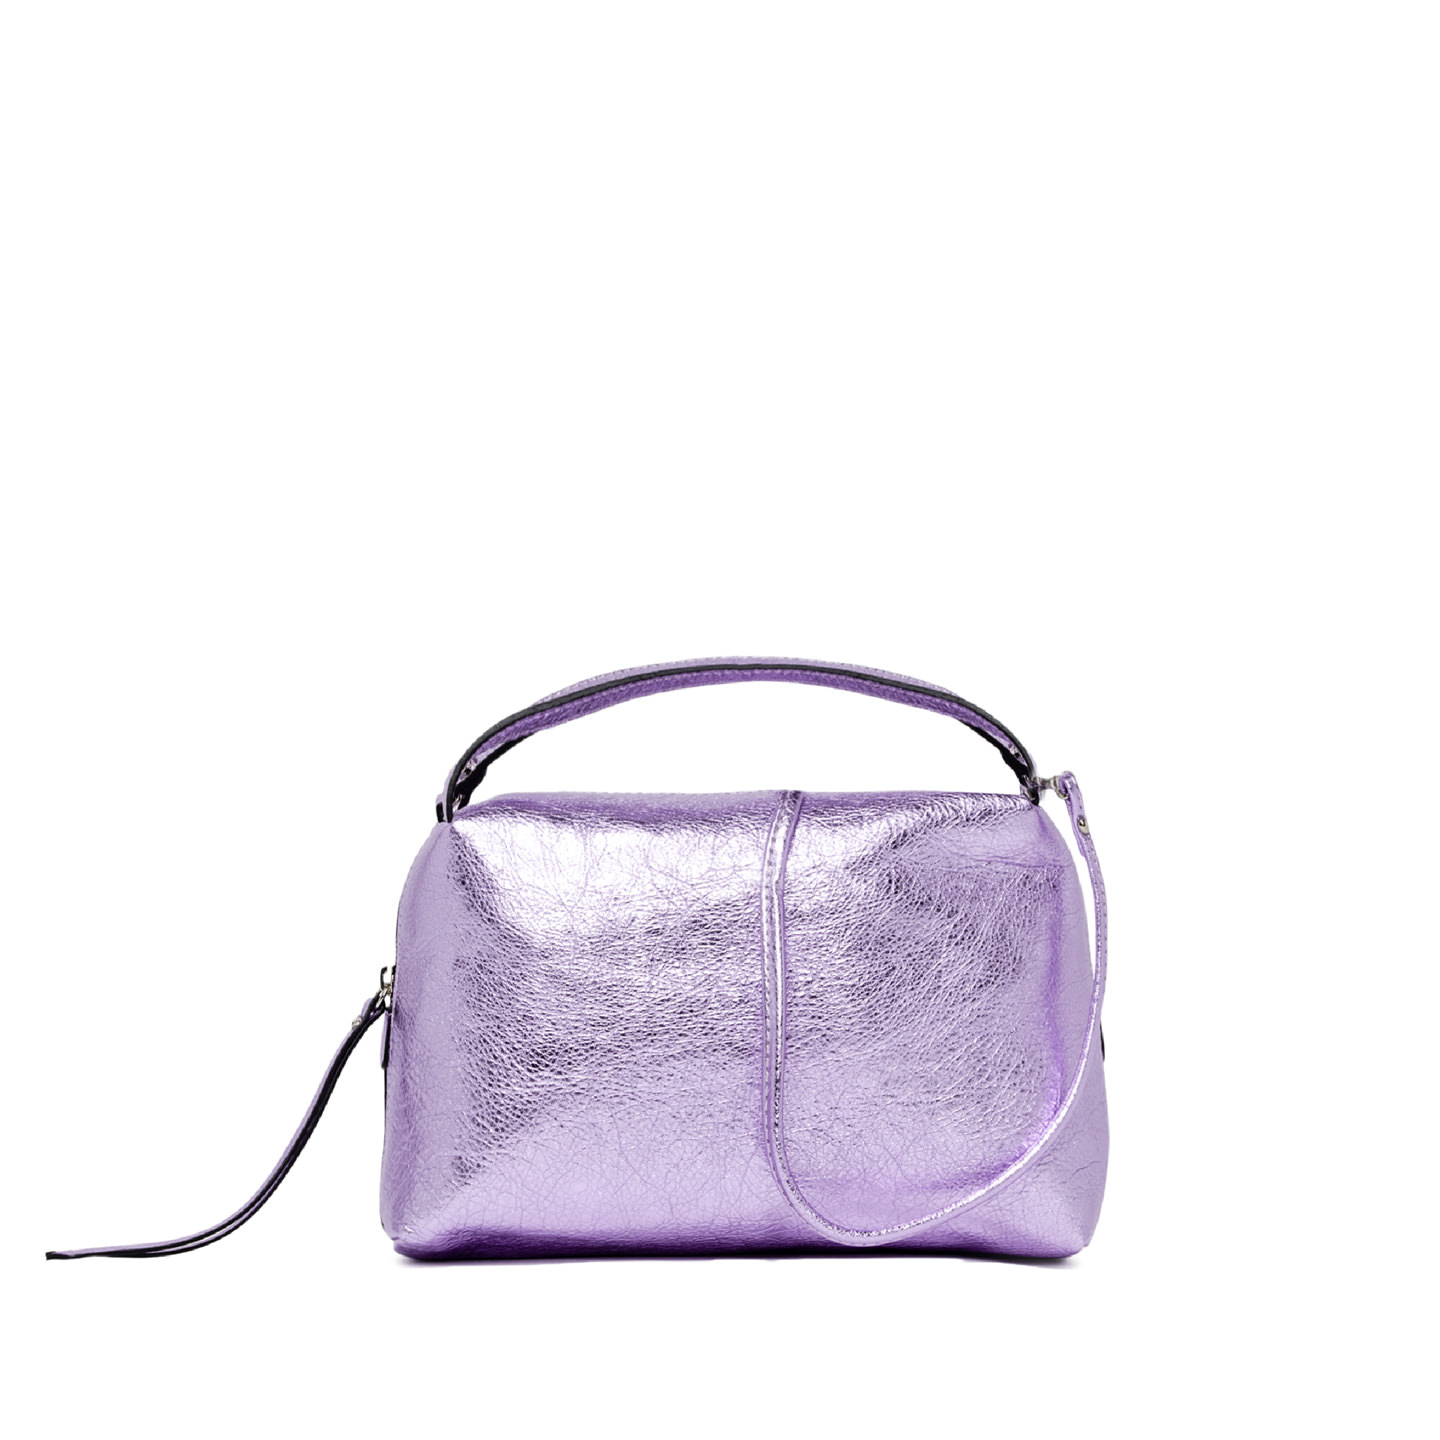 GIANNI CHIARINI: ALIFA MEDIUM LILAC MINI BAG